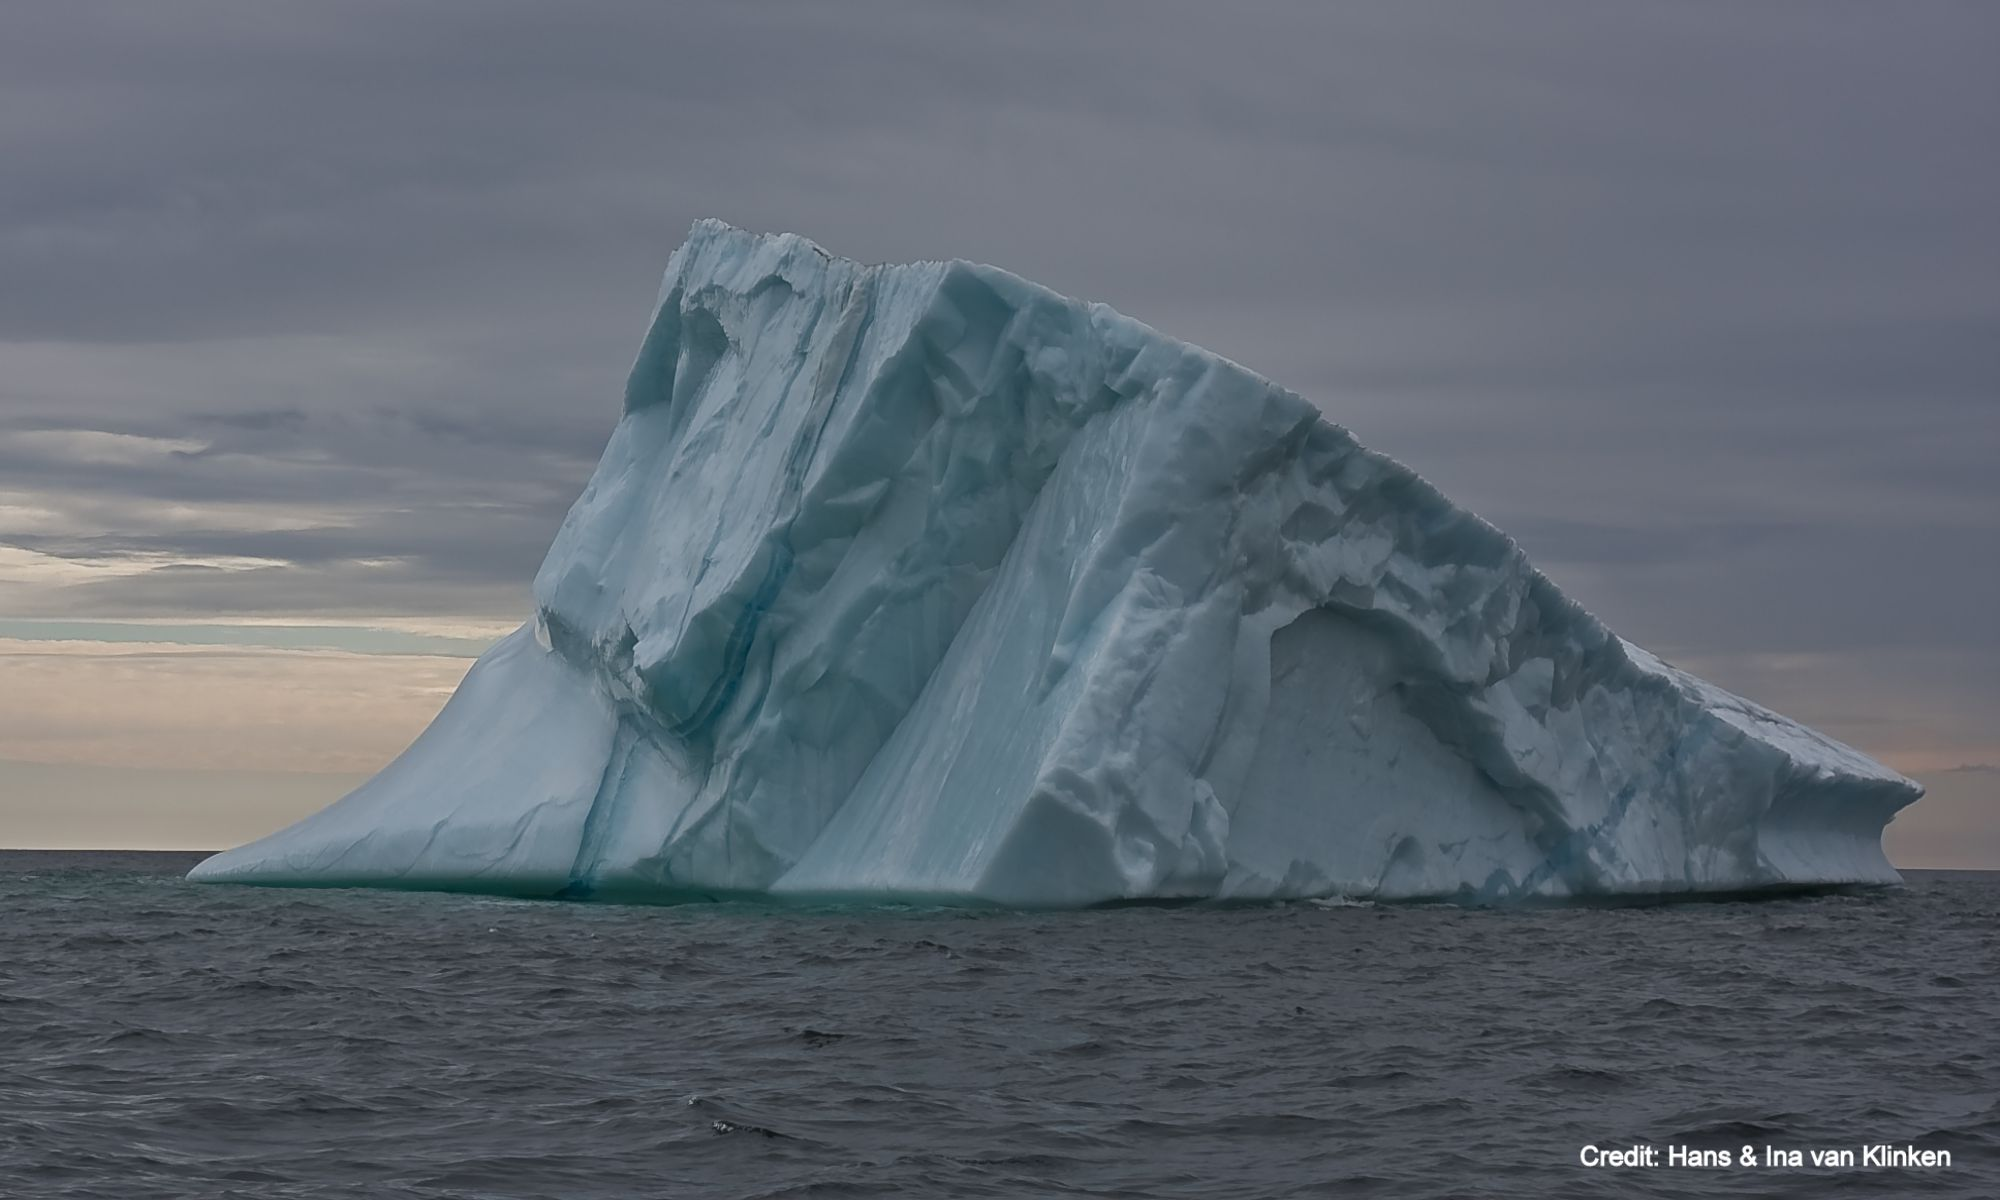 Iceberg in Hare Bay at Main Brook, NL